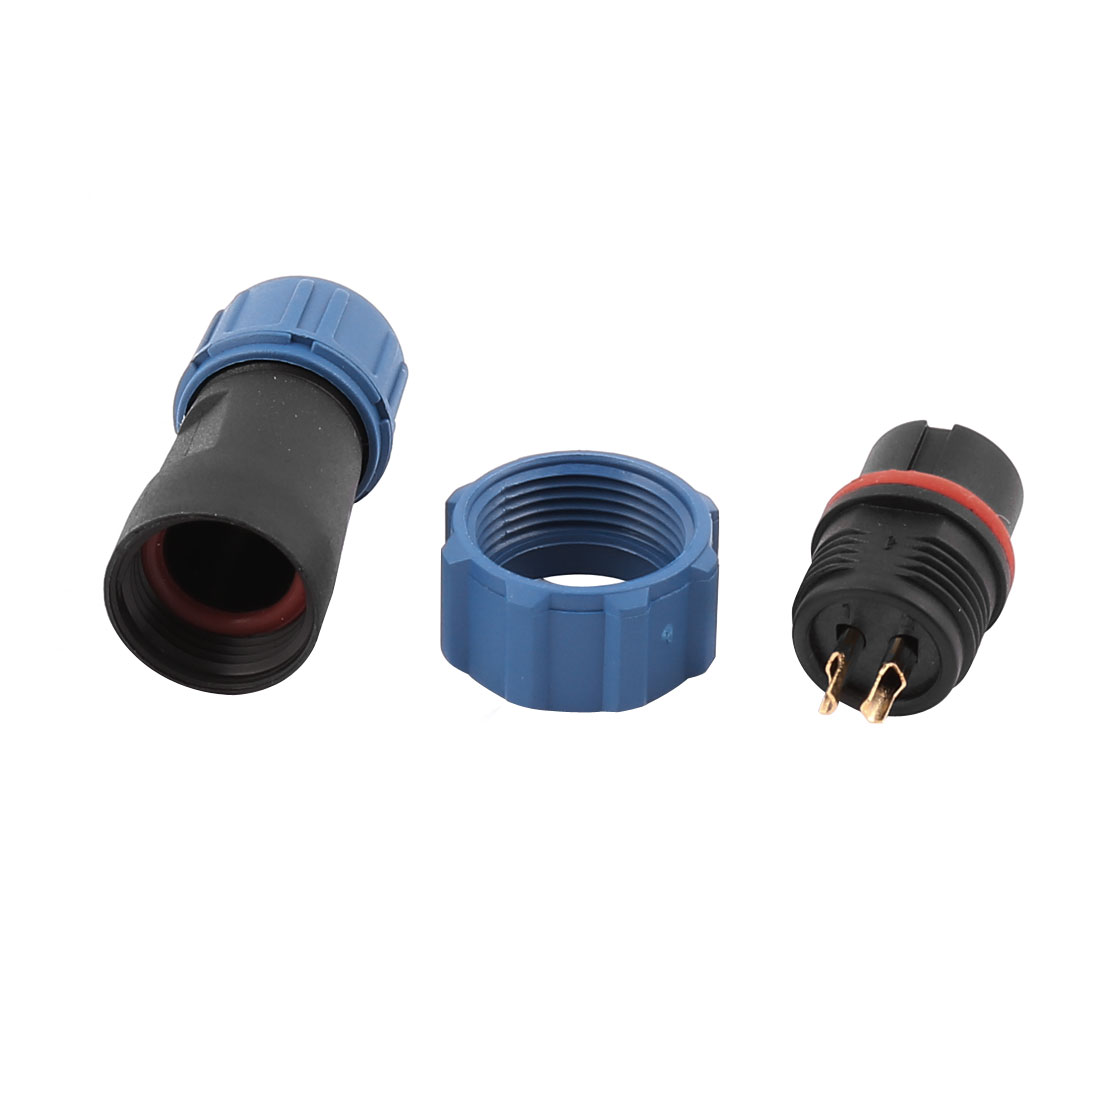 AC 250V 2 Terminals SP1310/P Waterproof Aviation Dustproof Adapter Connector